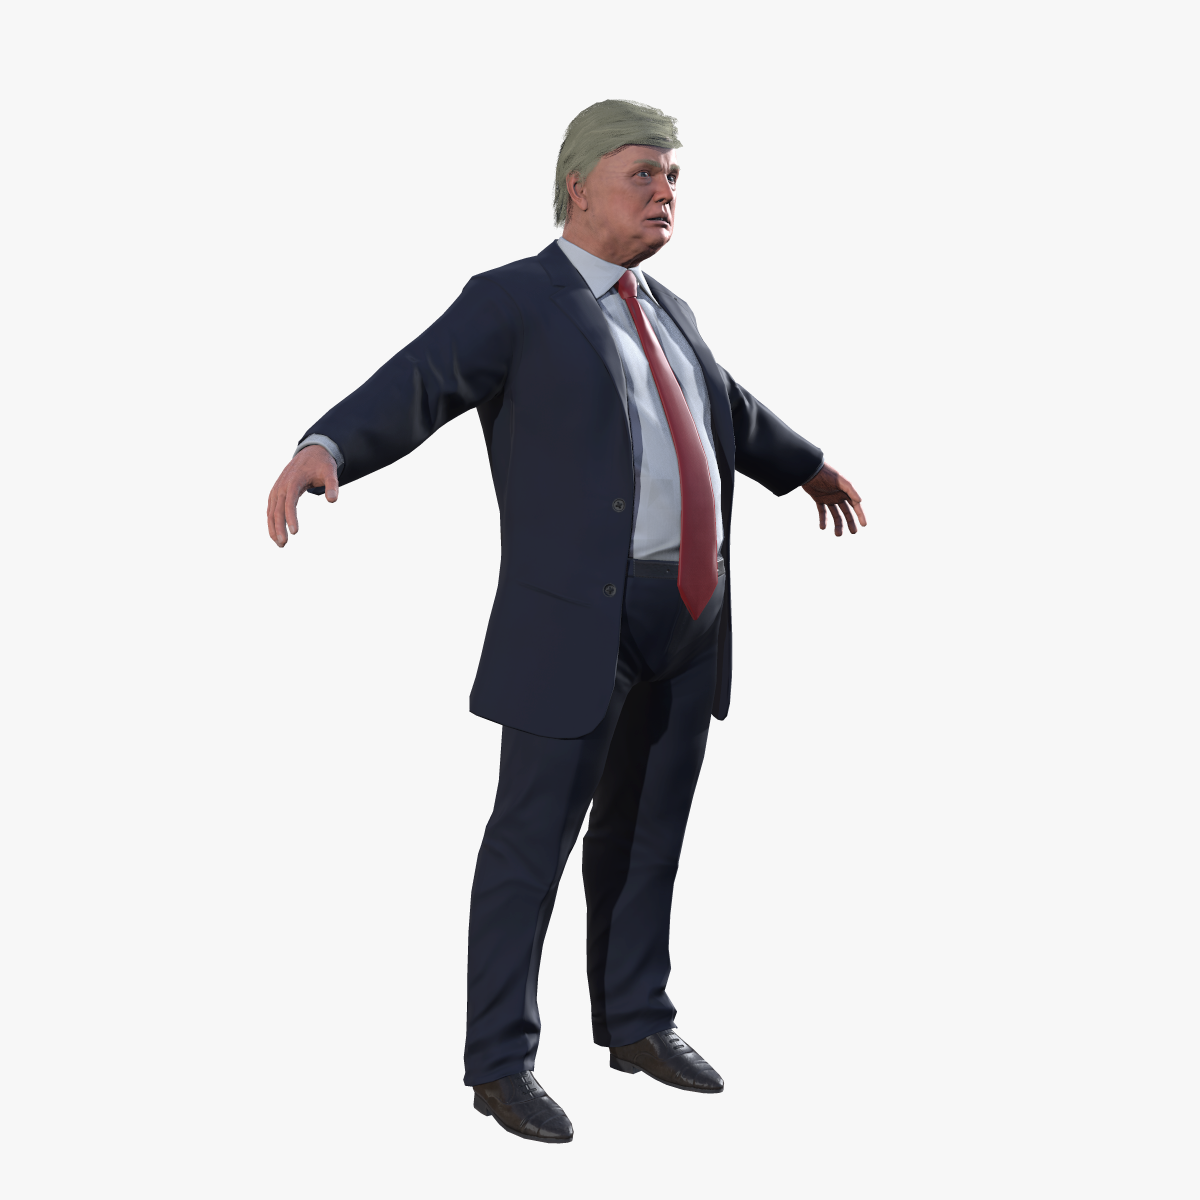 1200x1200 Donald Trump Rigged By Karinvanandel 3docean